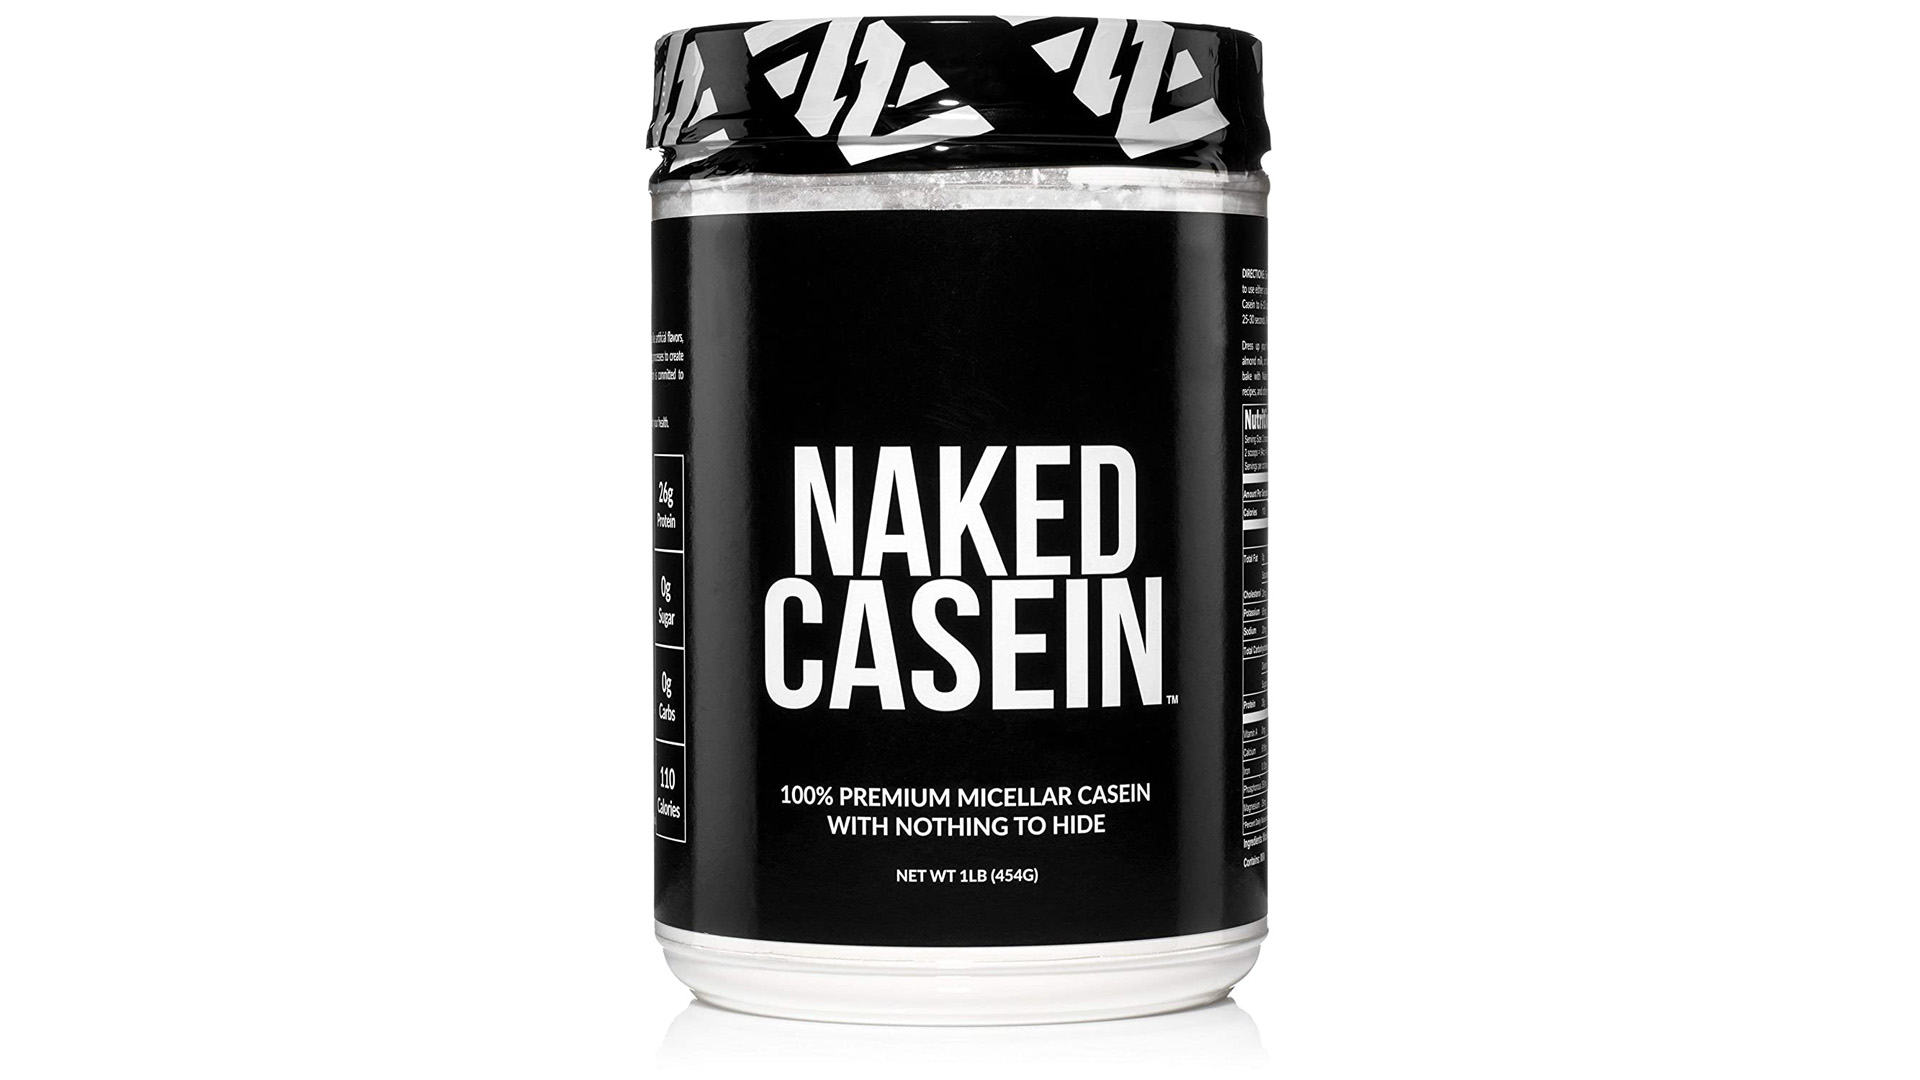 NAKED Nutrition Naked Casein Unflavored 100% Micellar Casein Protein